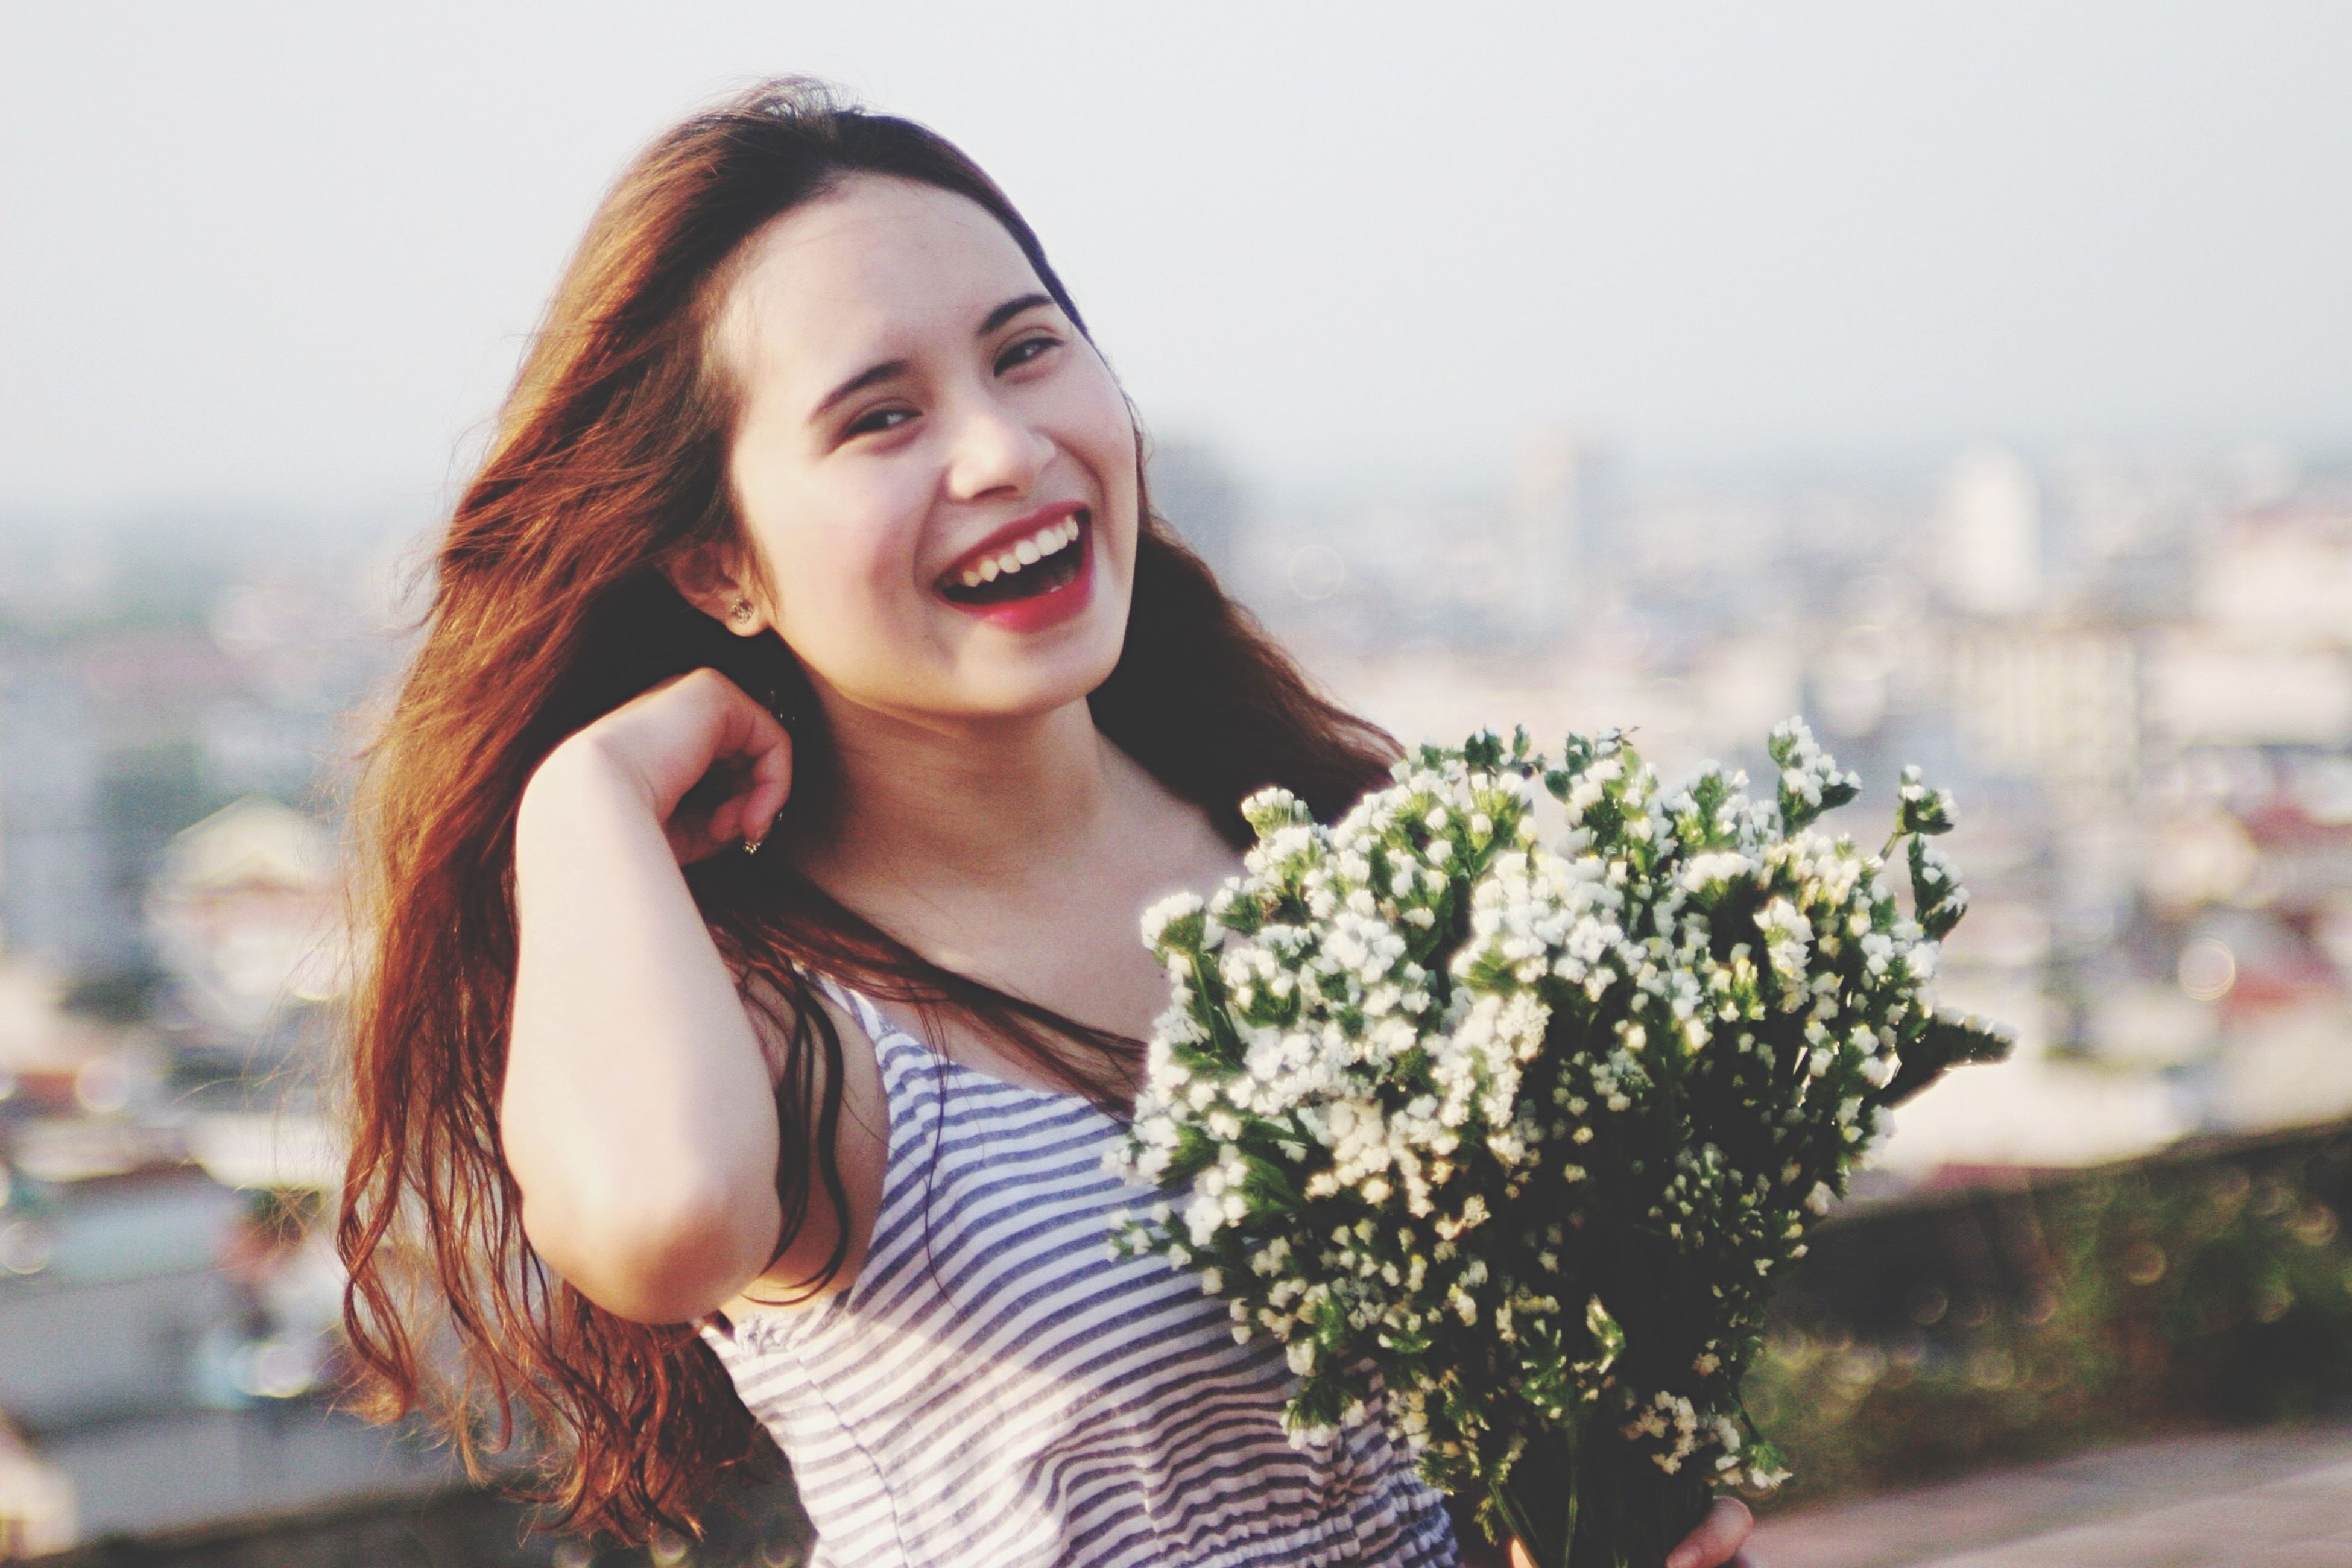 young adult, young women, person, lifestyles, focus on foreground, long hair, leisure activity, portrait, looking at camera, casual clothing, smiling, front view, waist up, standing, flower, three quarter length